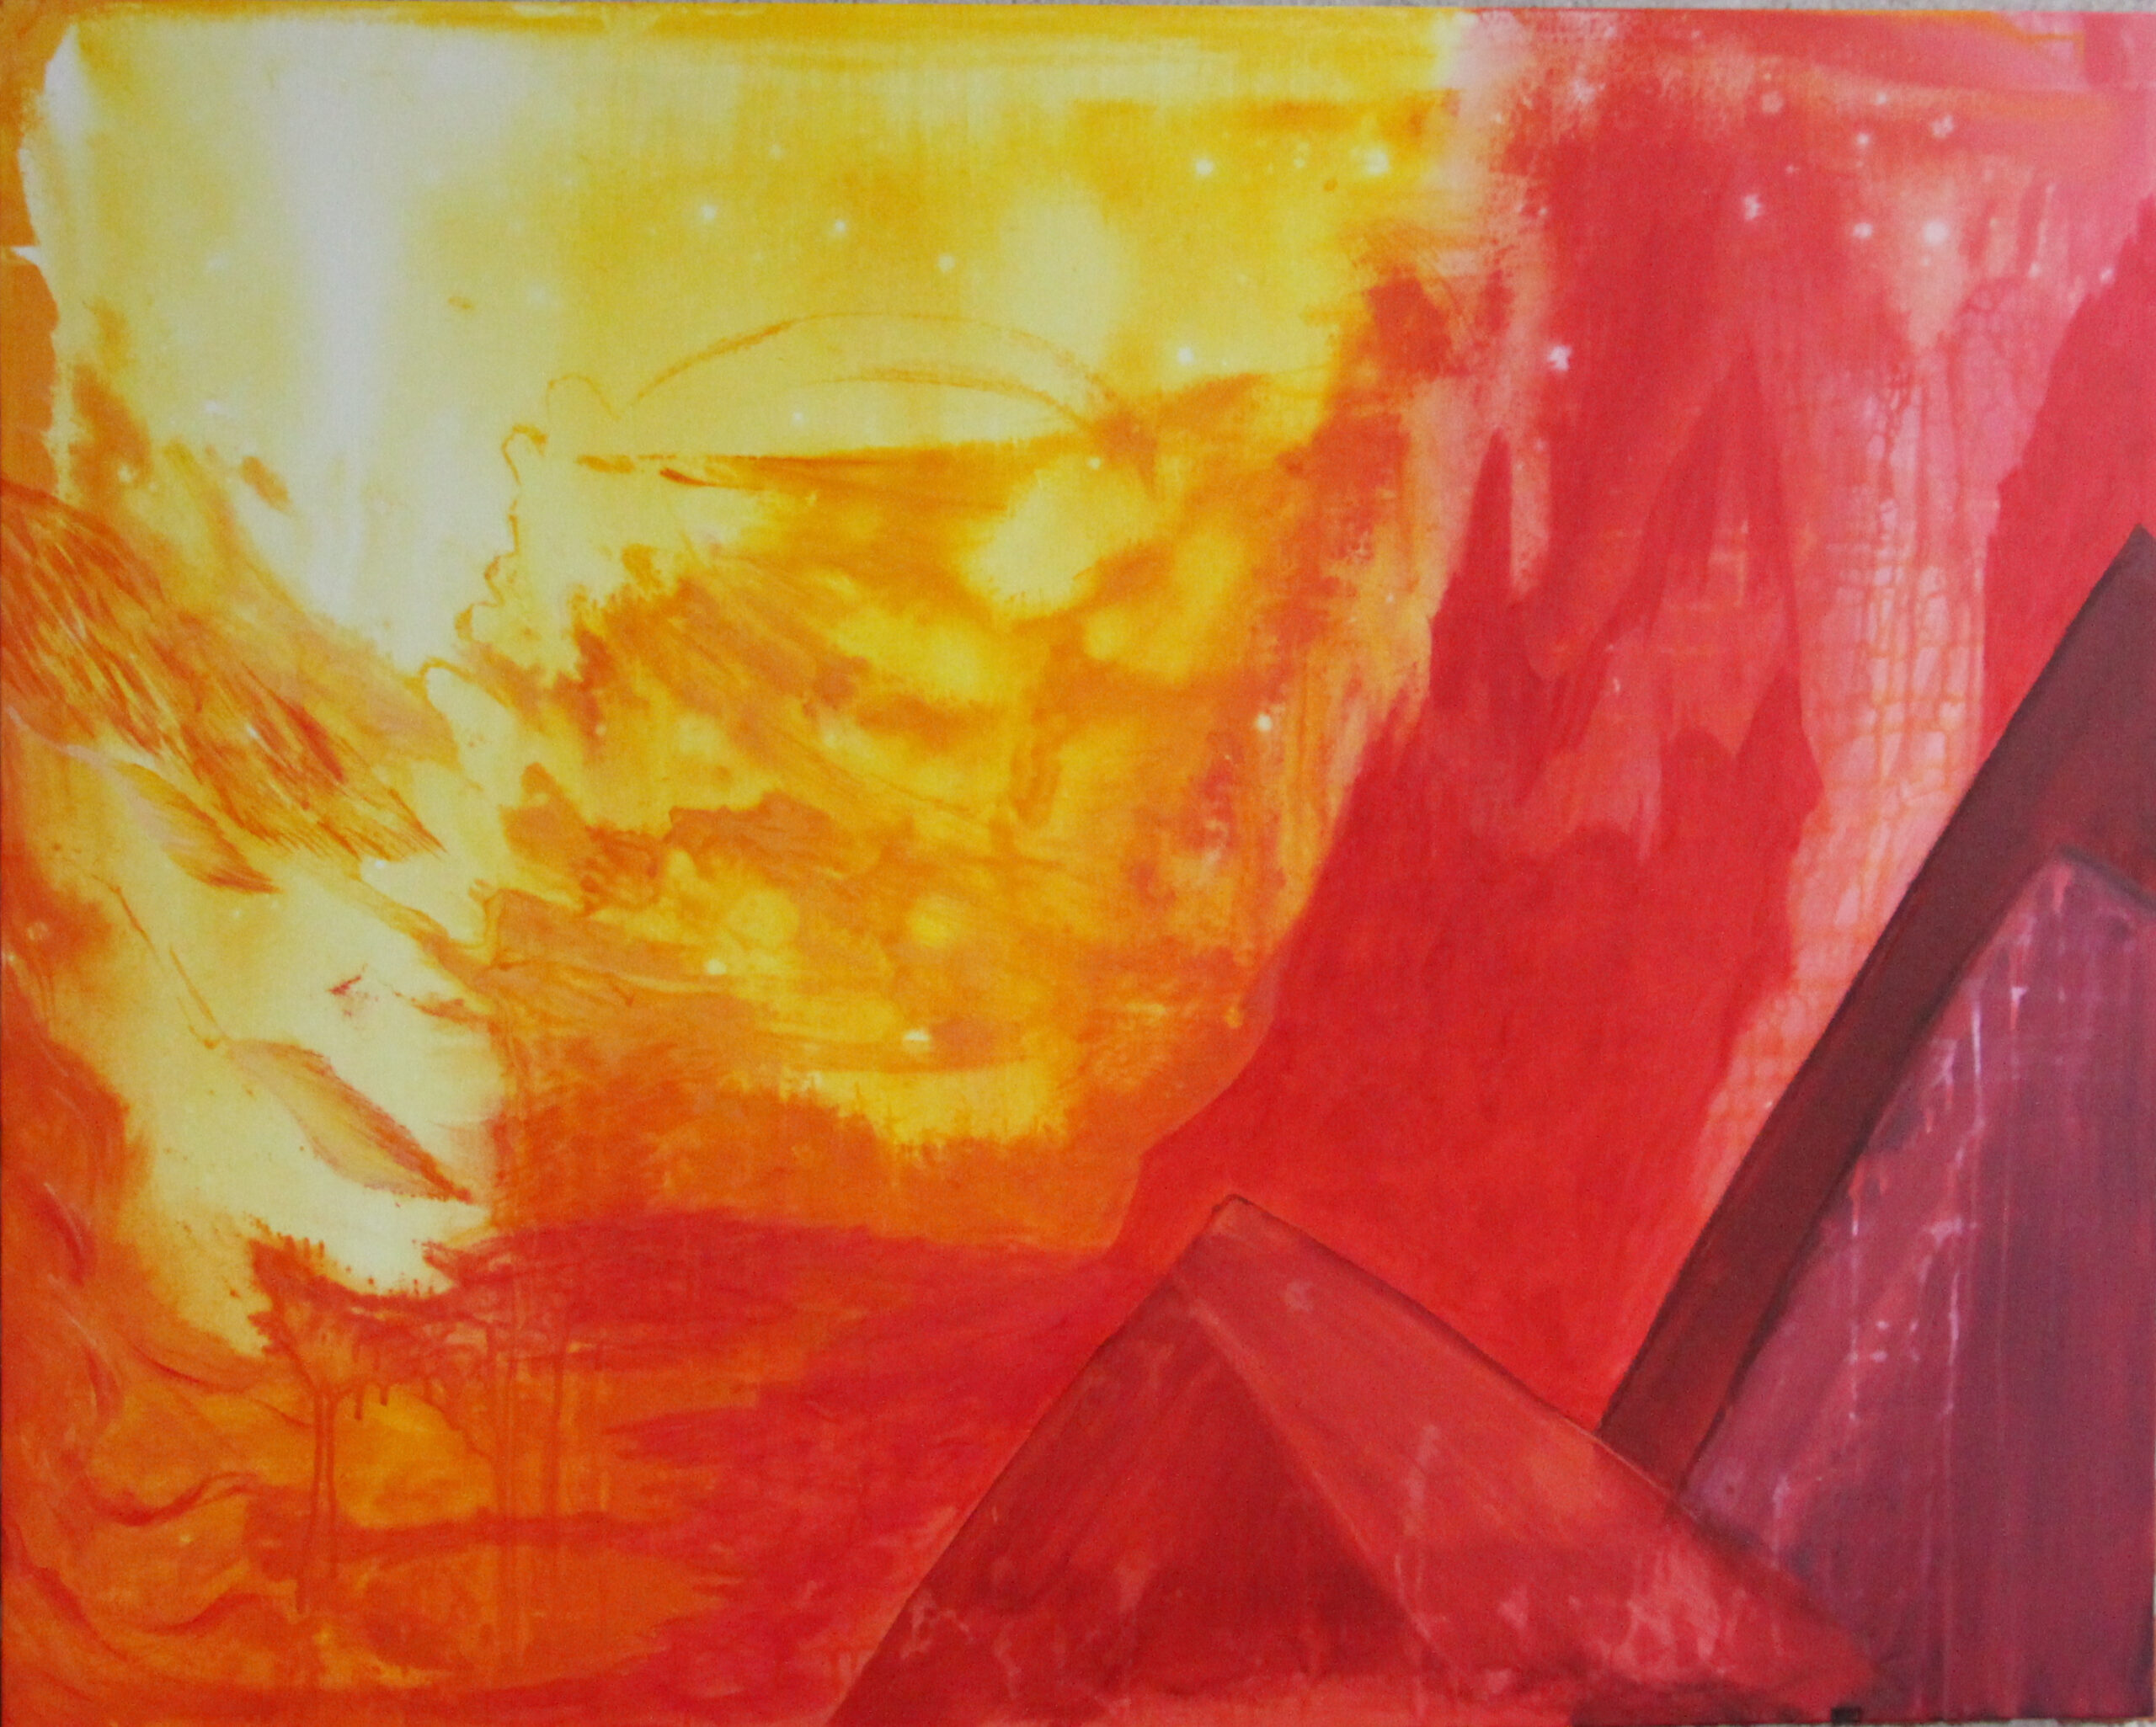 Red Painting acrylic on canvas